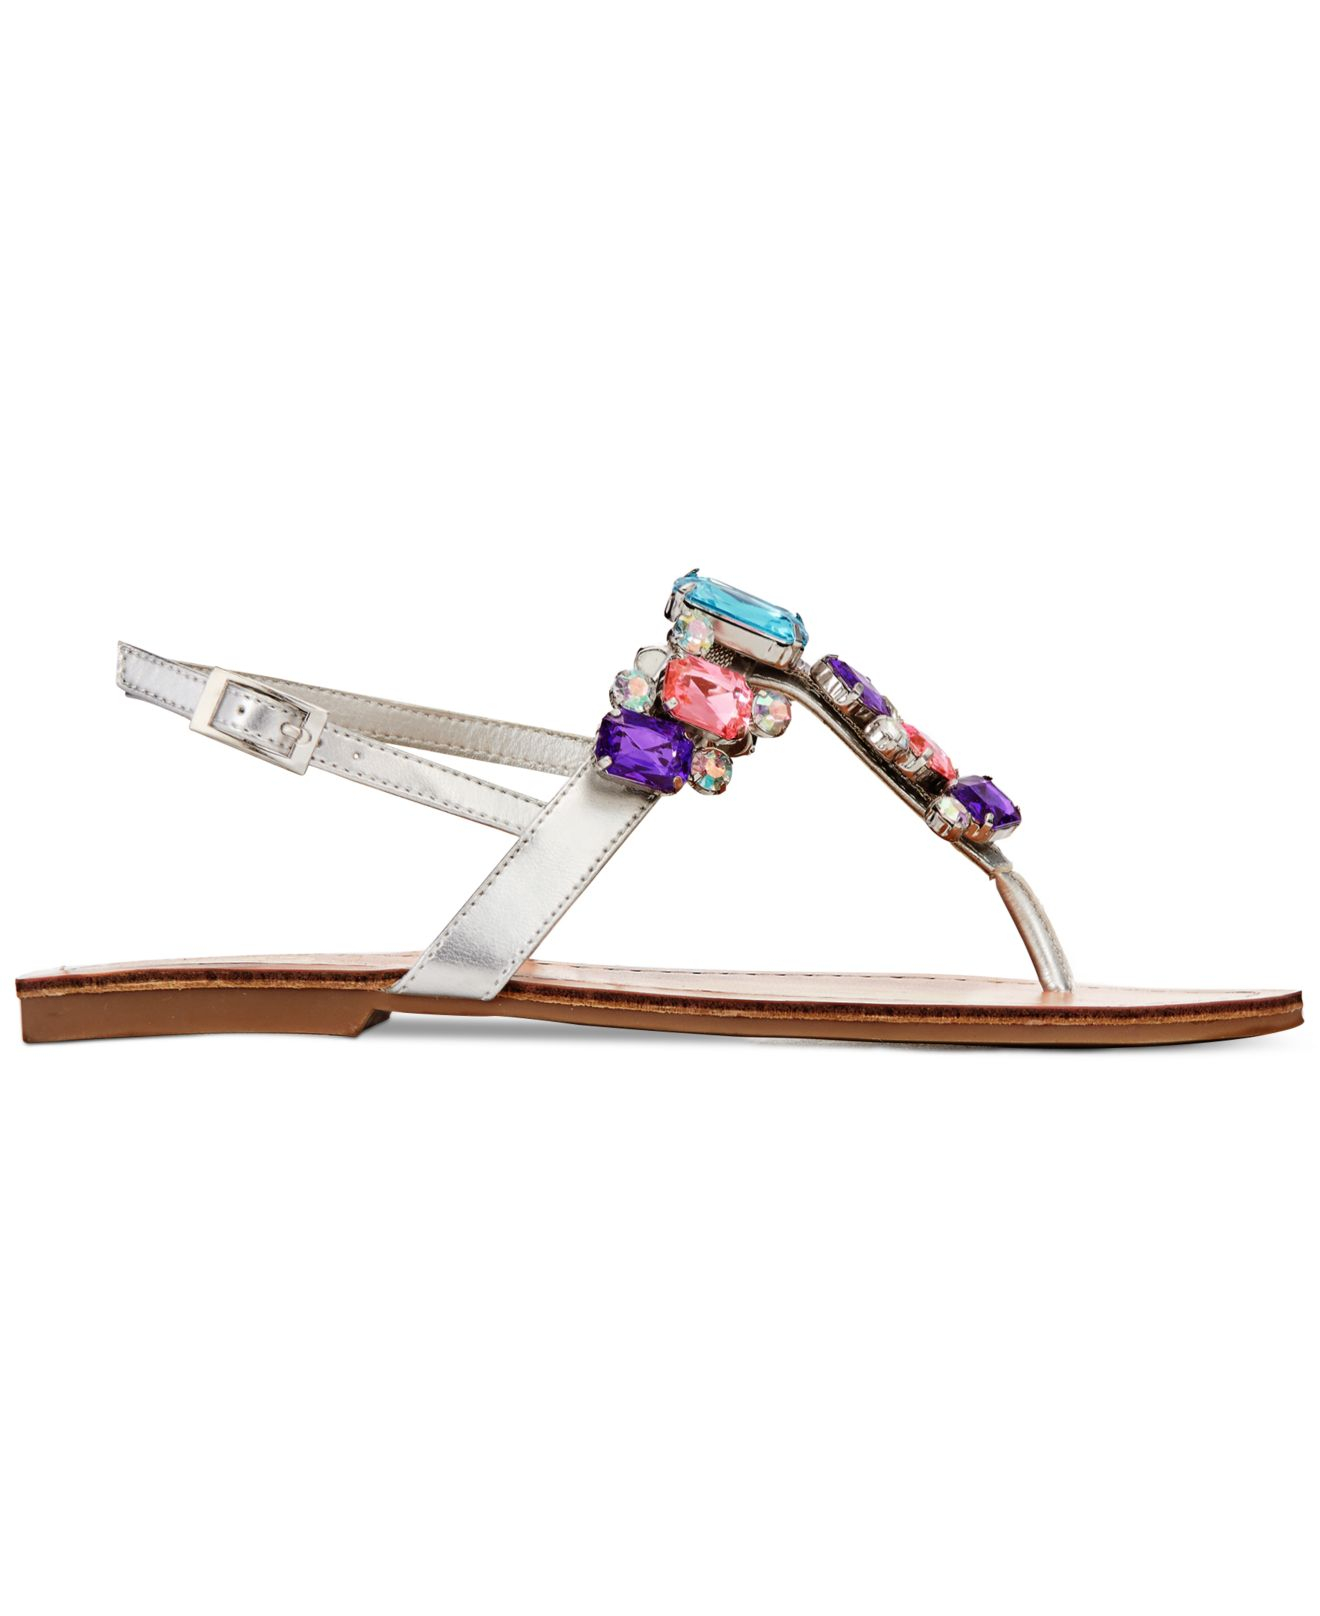 7af55eb887ee9c Lyst - G by Guess Kyli Jeweled Flat Sandals in Metallic